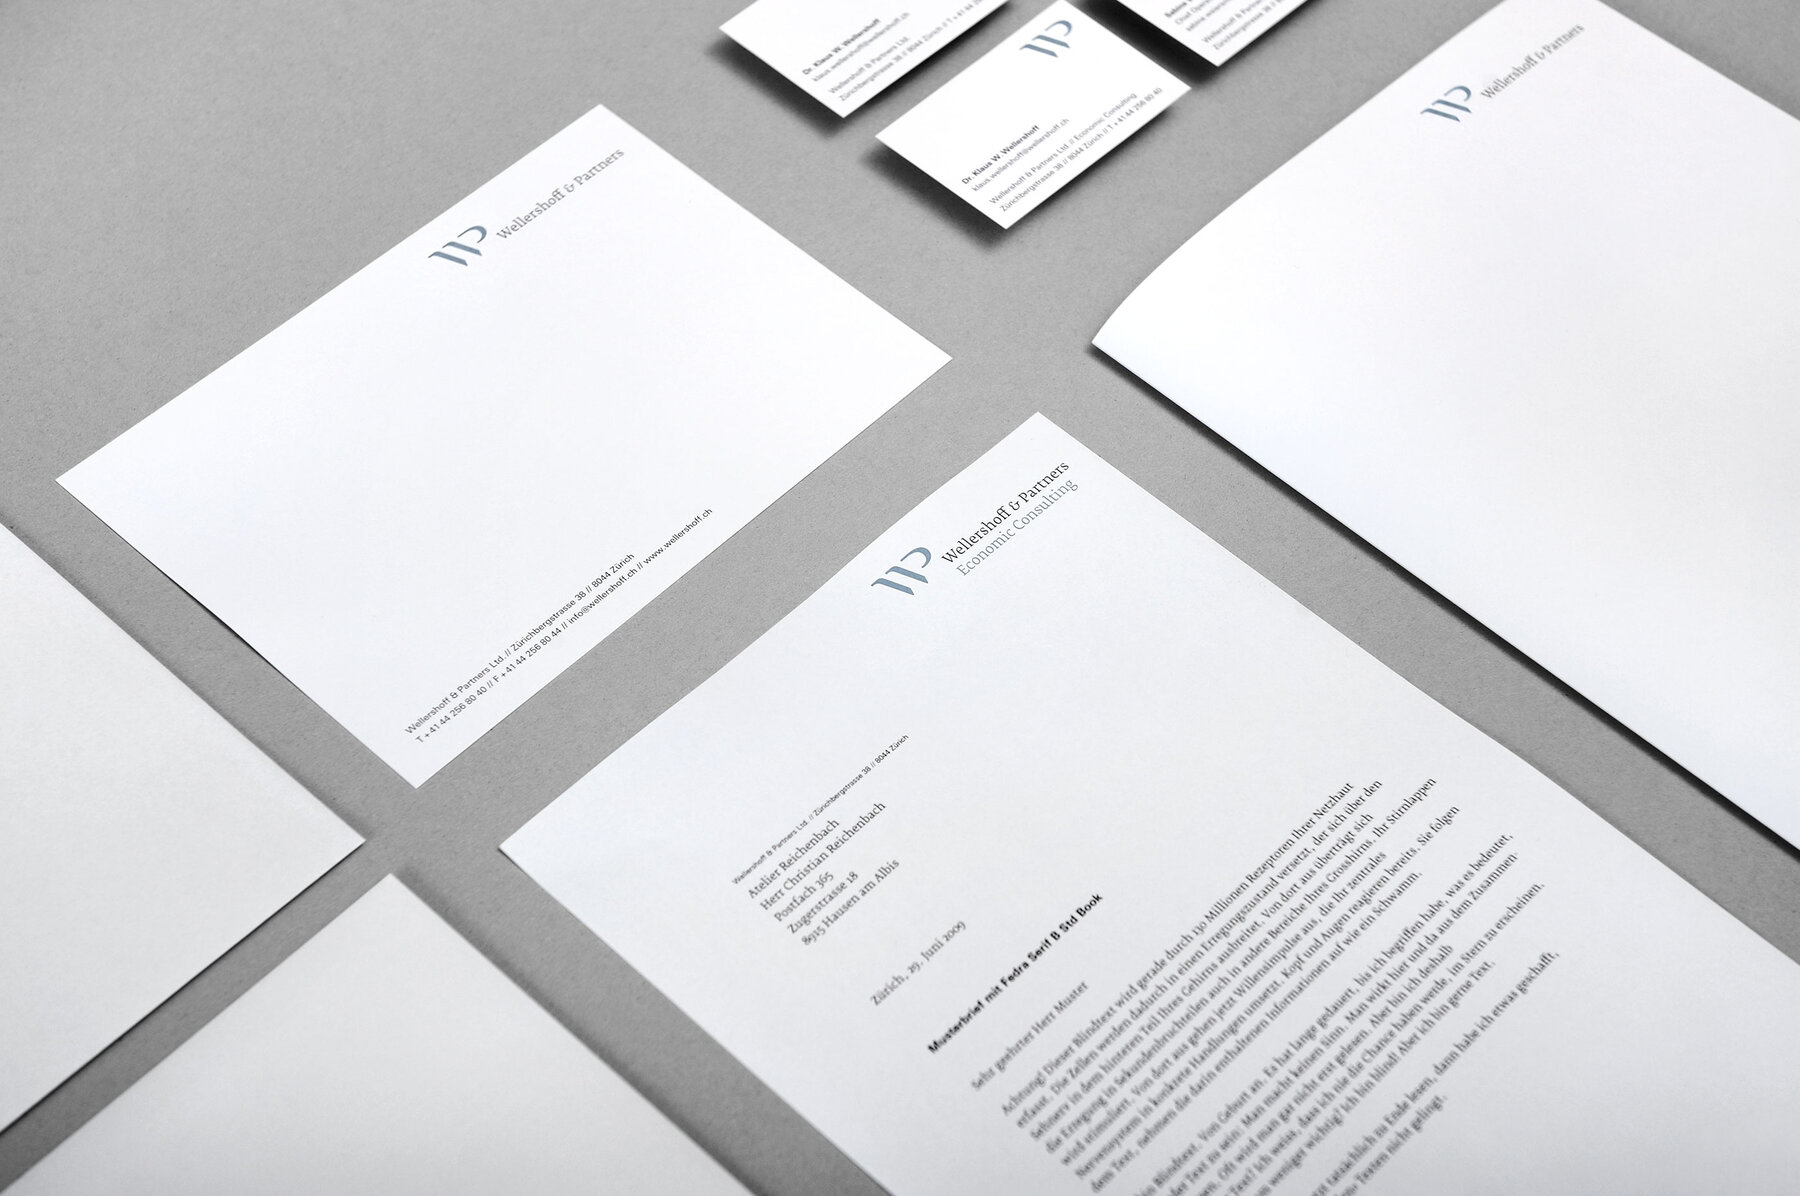 Briefschaft Wellershoff & Partners